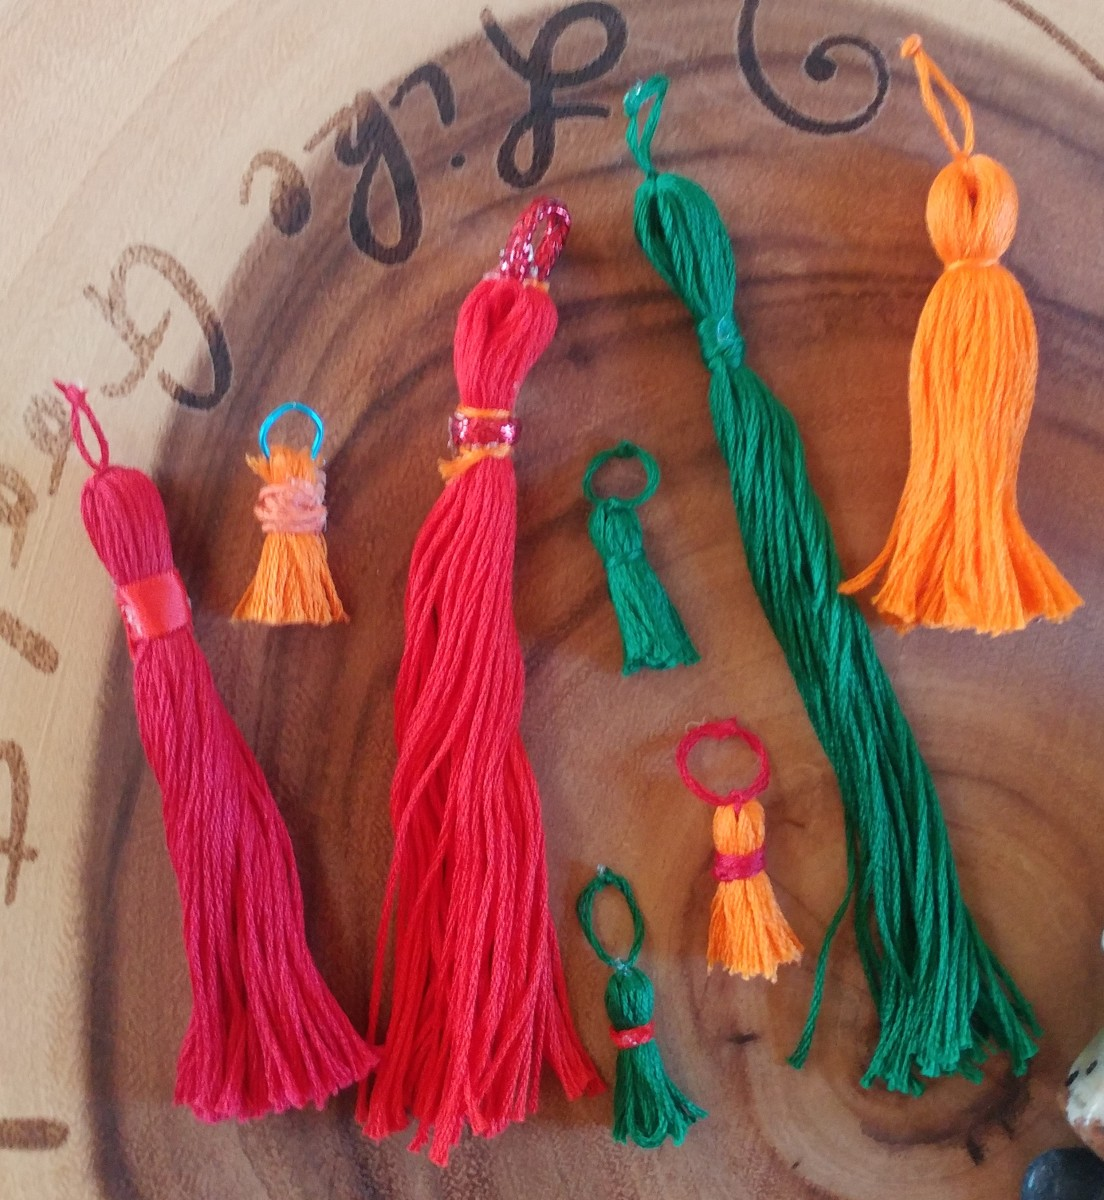 Here are some homemade tassels in a variety of styles. Get creative!